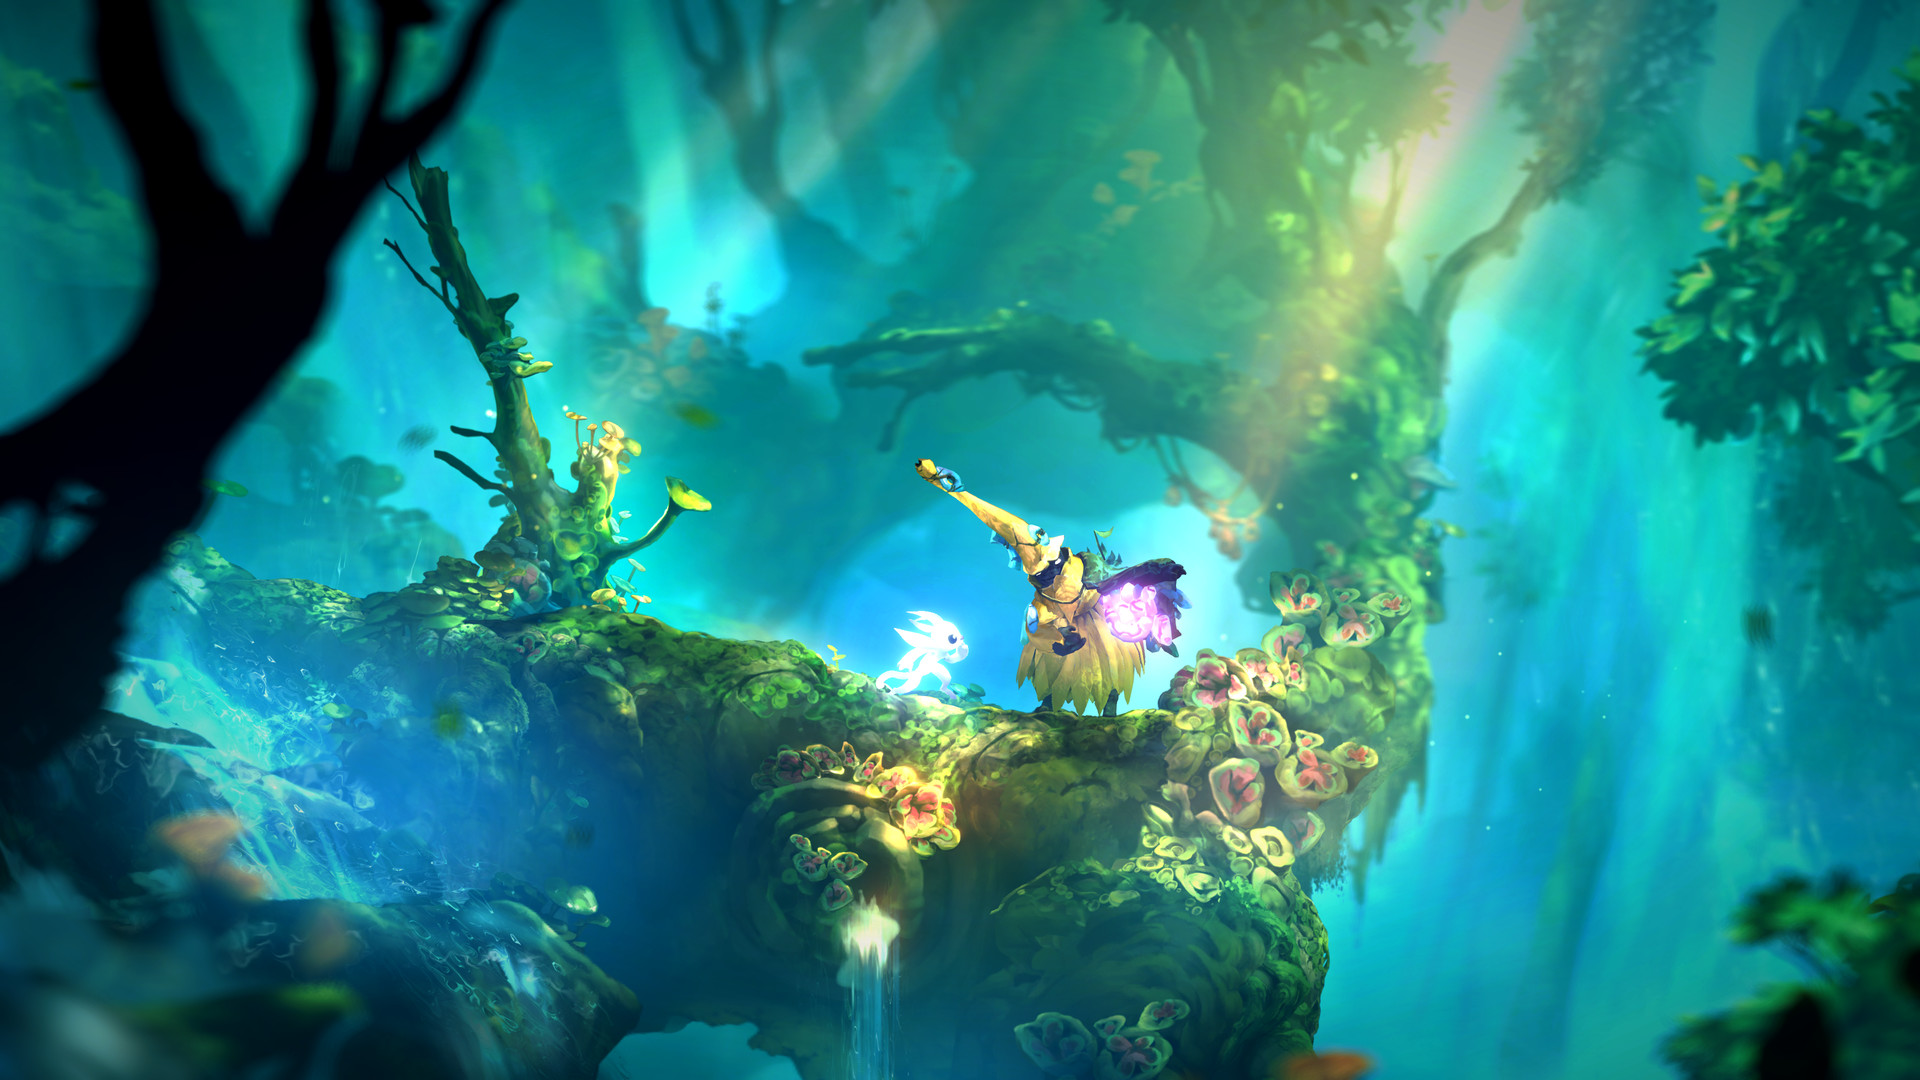 Microsoft is working on an 'Xbox Series X version' of Ori and the Will of the Wisps using its 'crazy power'